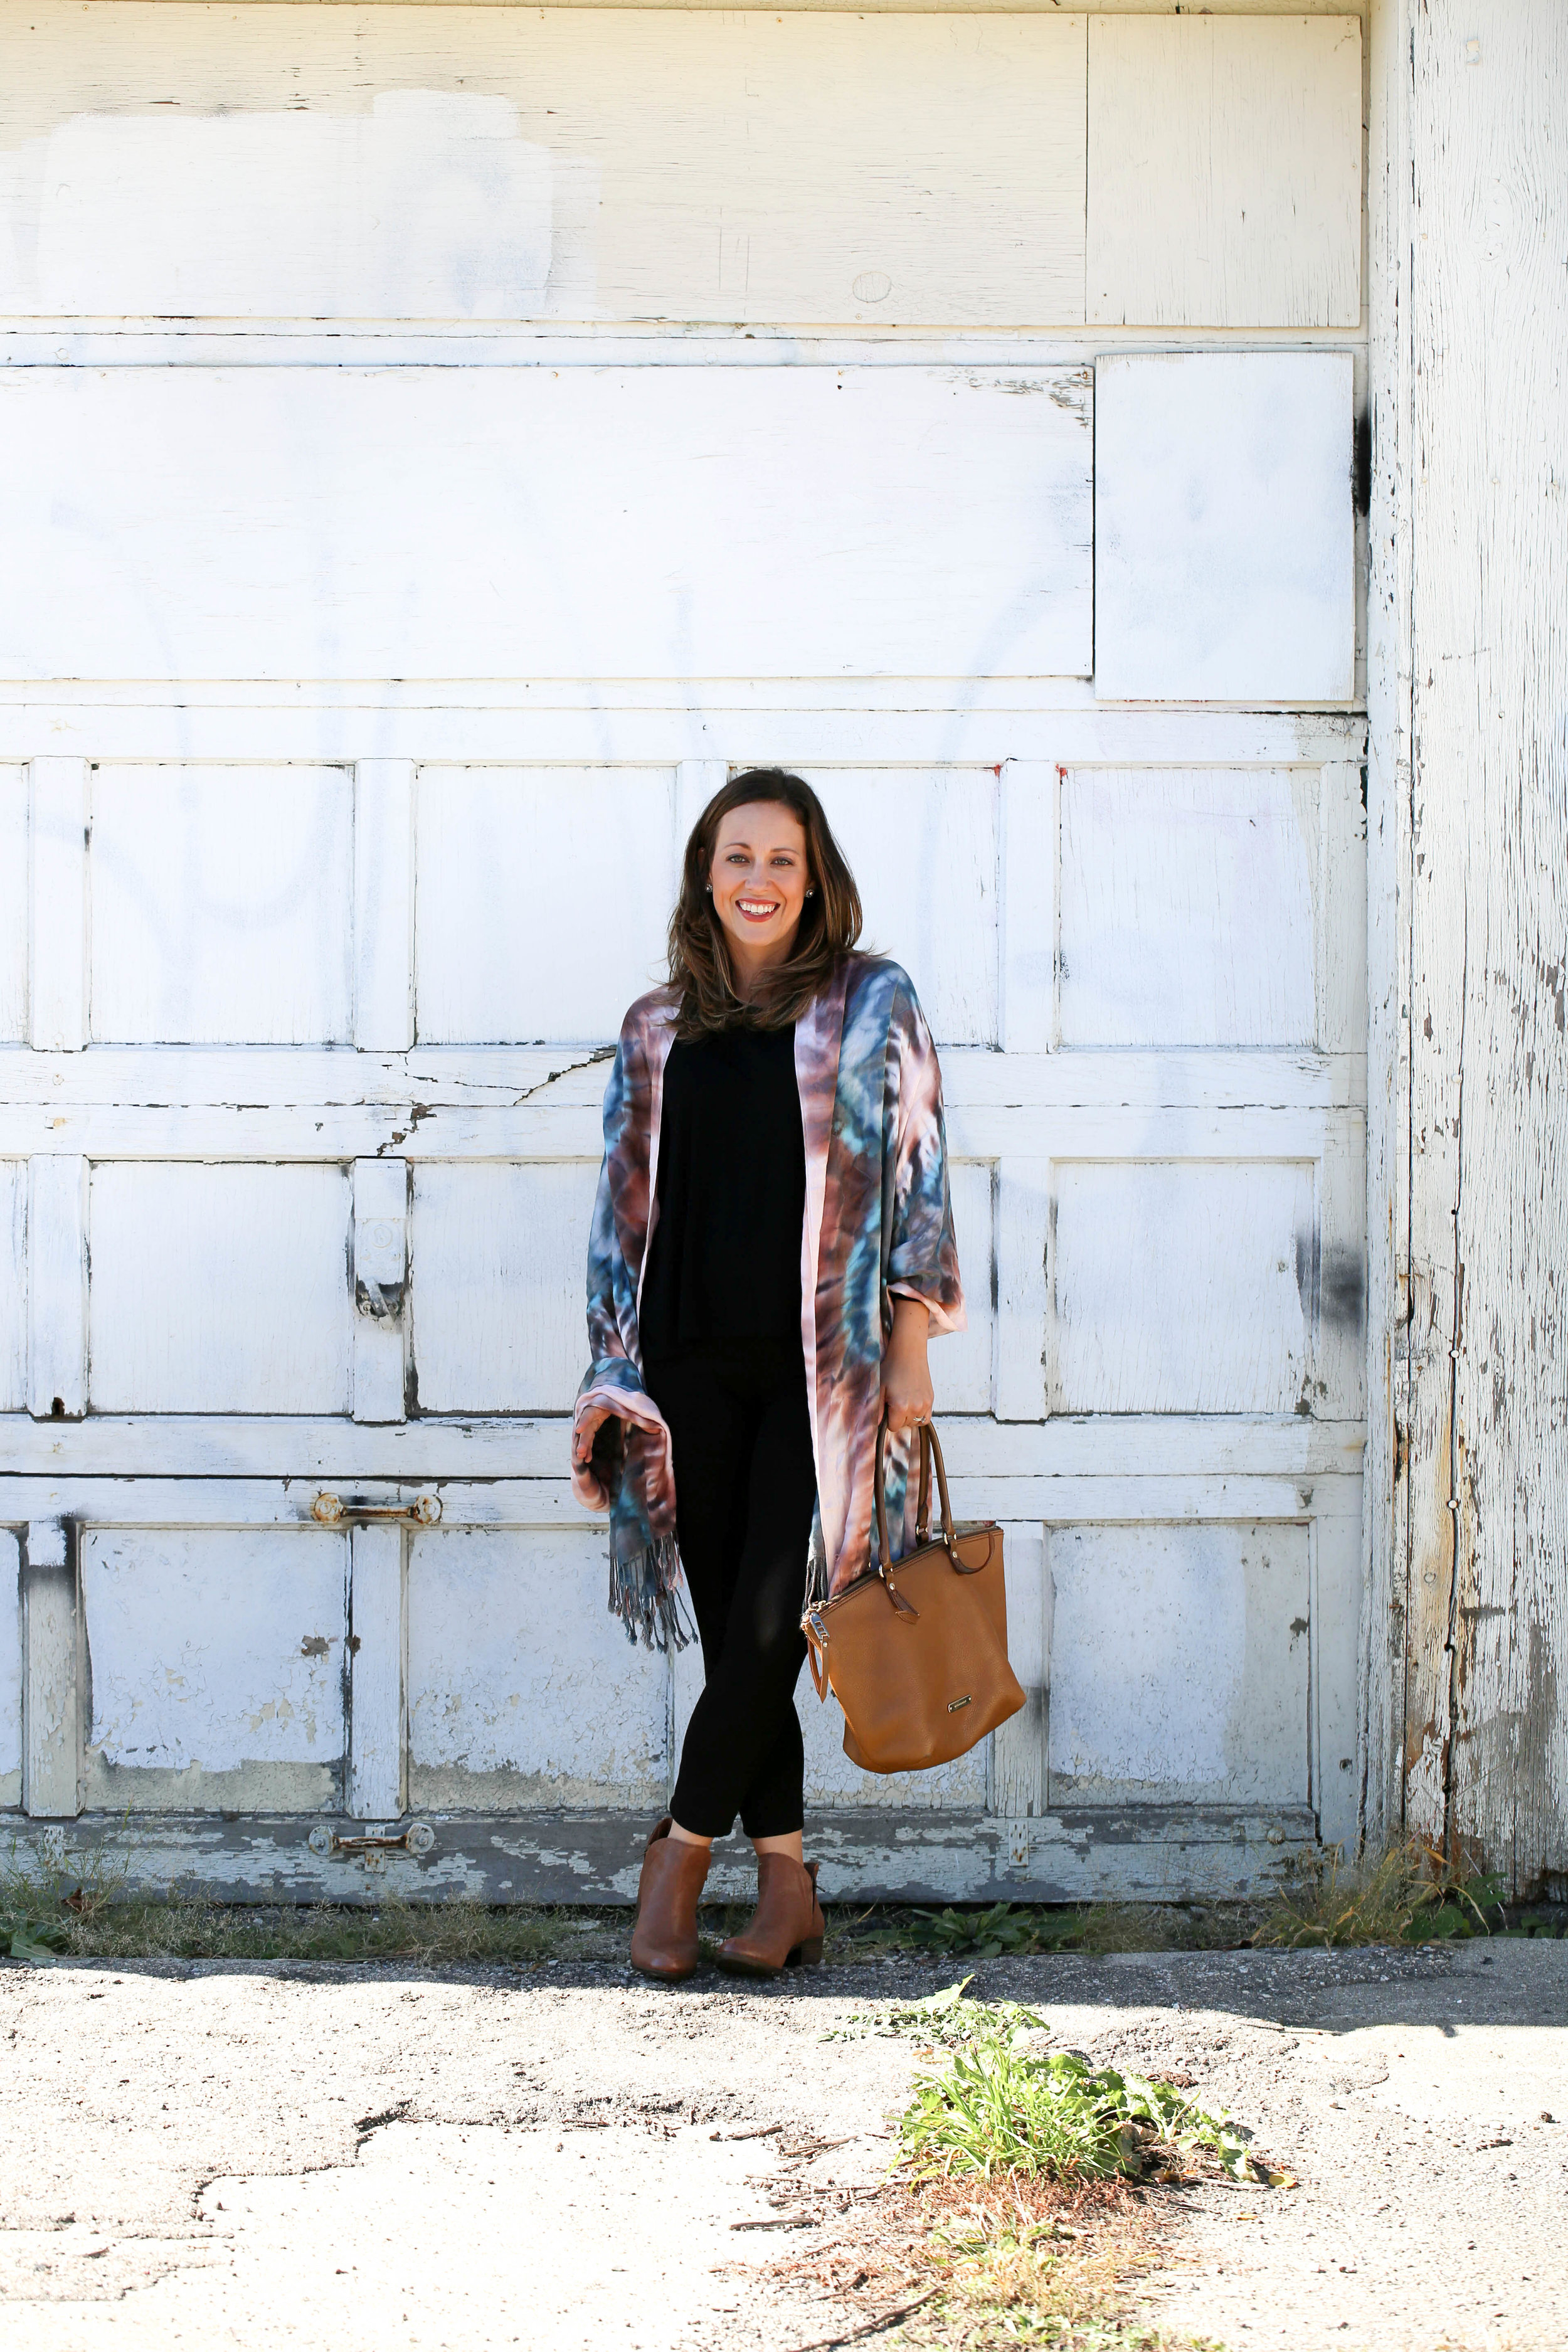 4 ways to tie a scarf, scarves, fall fashion, fall scarves, how to wear tie dye, tie dye fashion, tie dye, fall prints, autumn, best accessories, pop of color, statement piece, fall booties, perfect brown bag,